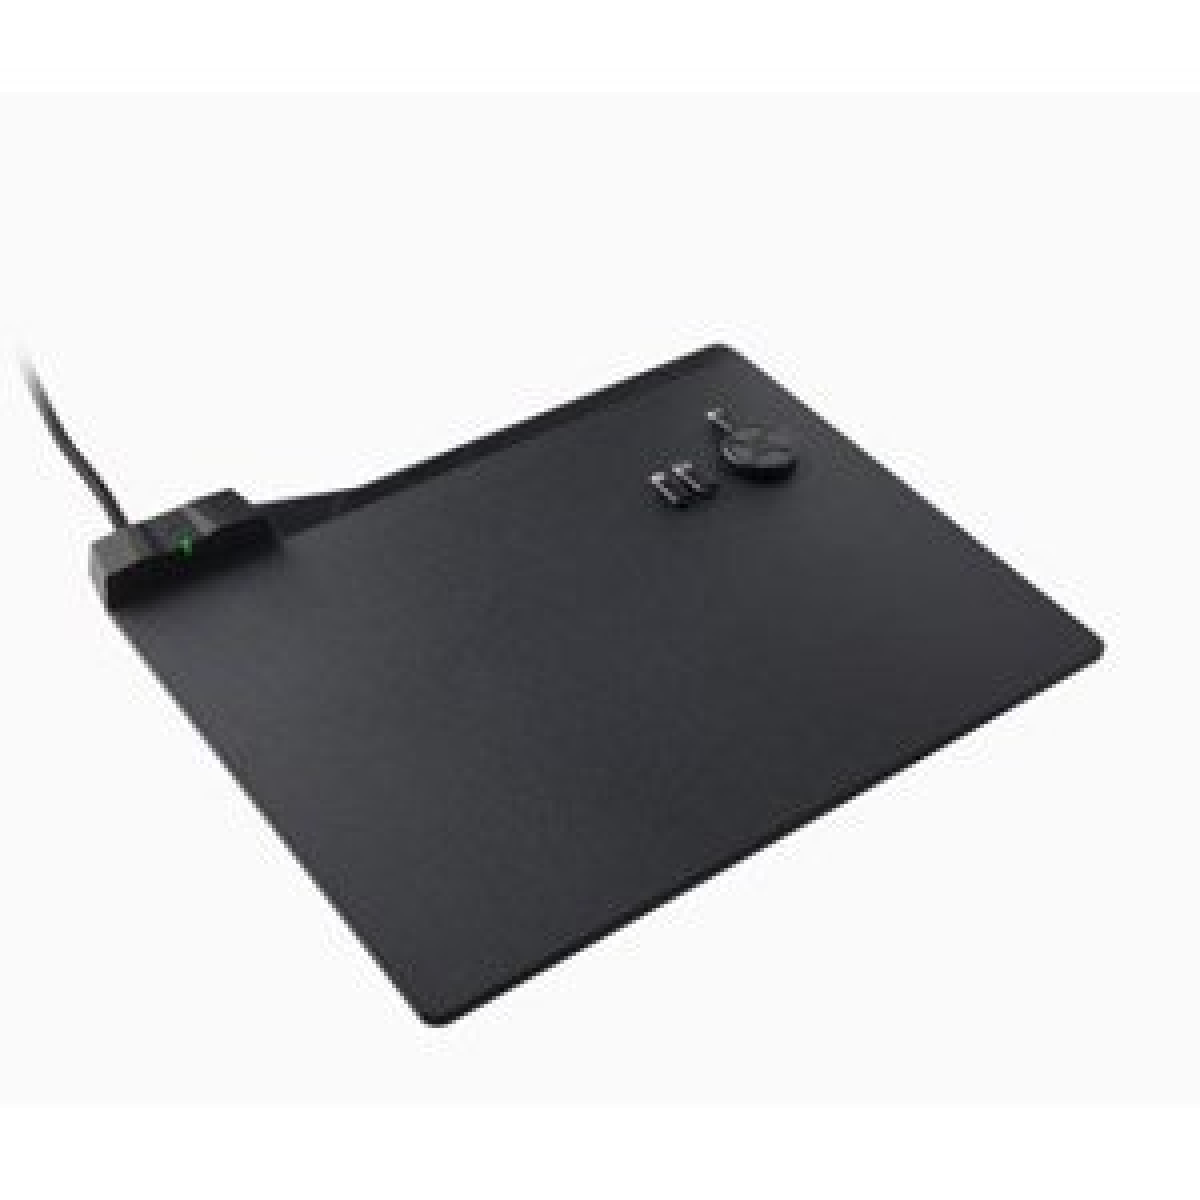 Corsair MM1000 Qi Wireless Charging Mouse Pad for PC image